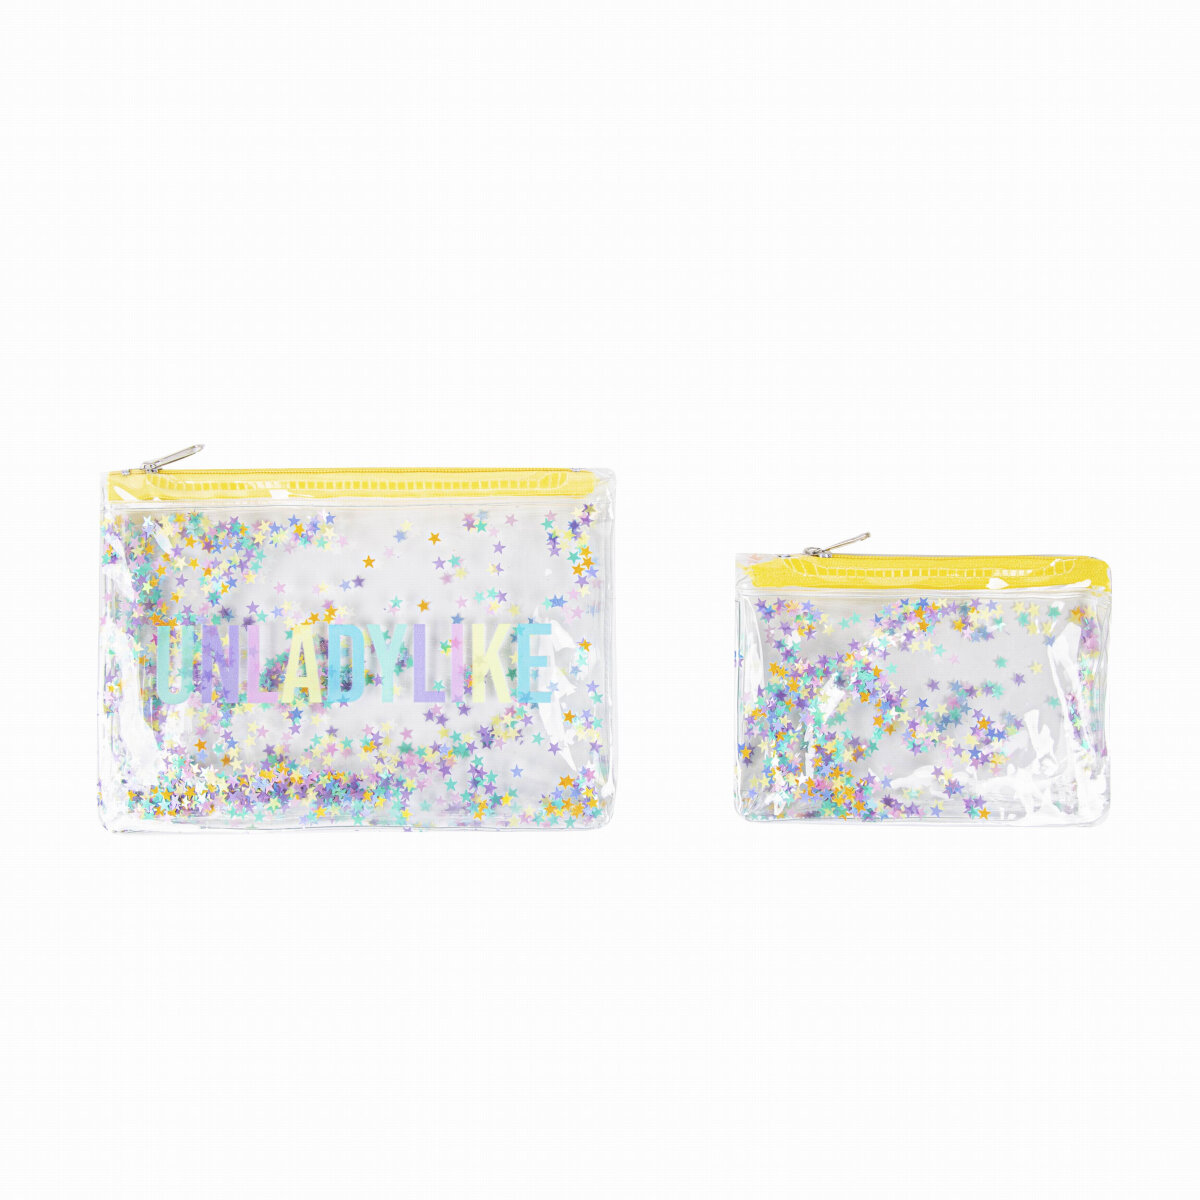 image 2Pc-Unladylike-Confetti-Pouch---Exclusive-Main-Image